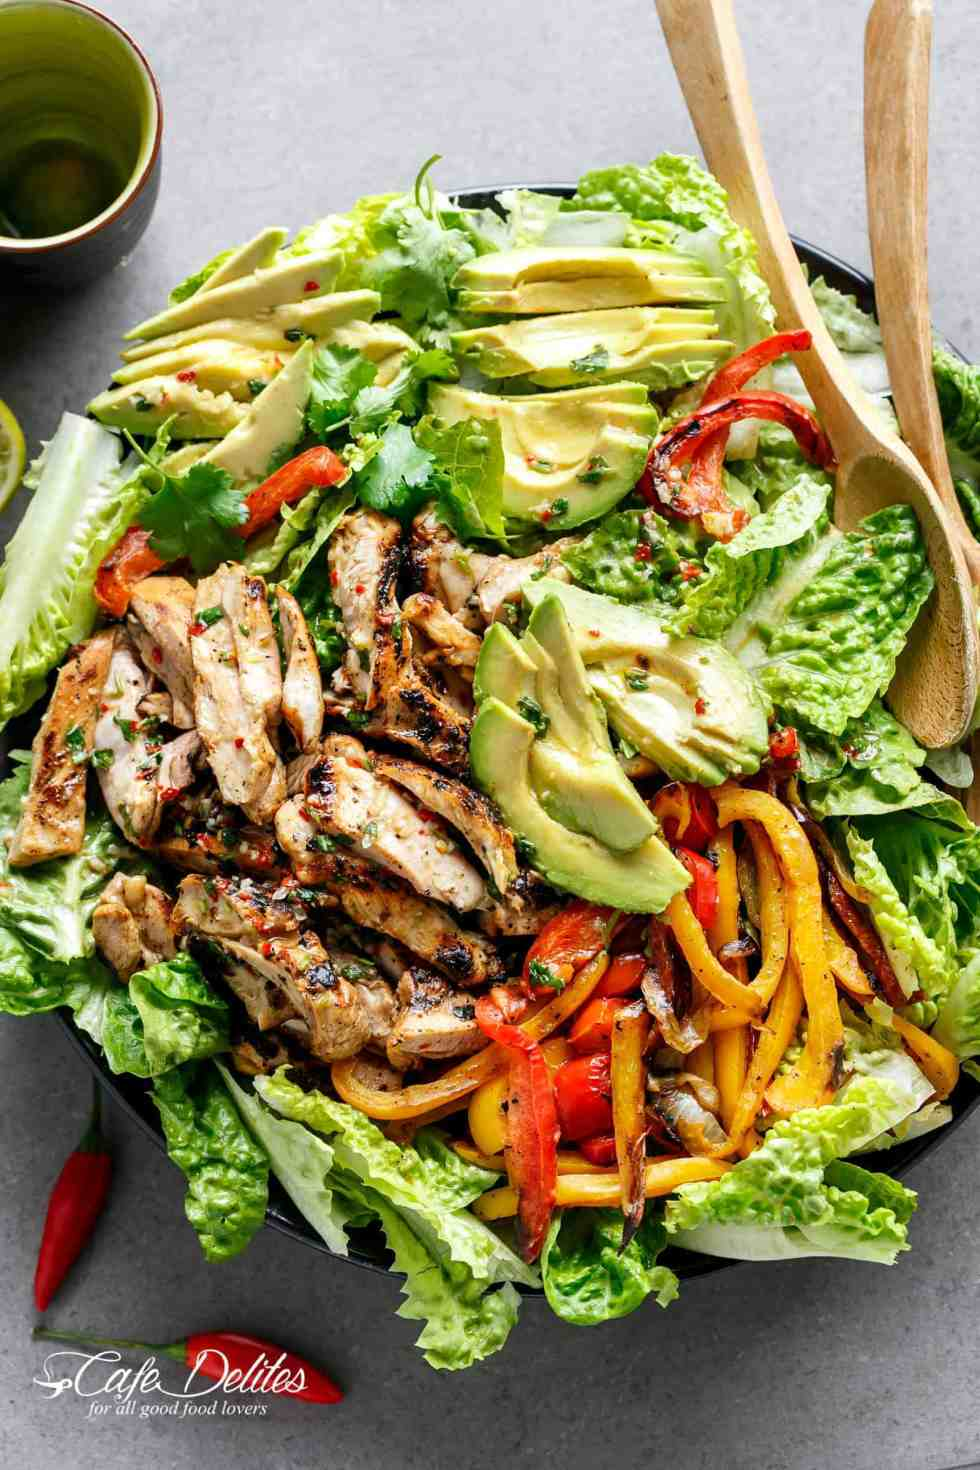 Grilled Chili Lime Chicken Fajita Saladwith a dressingthat doubles as a marinade! Agenius way of keeping ALLof the incredible flavours in this salad! | cafedelites.com